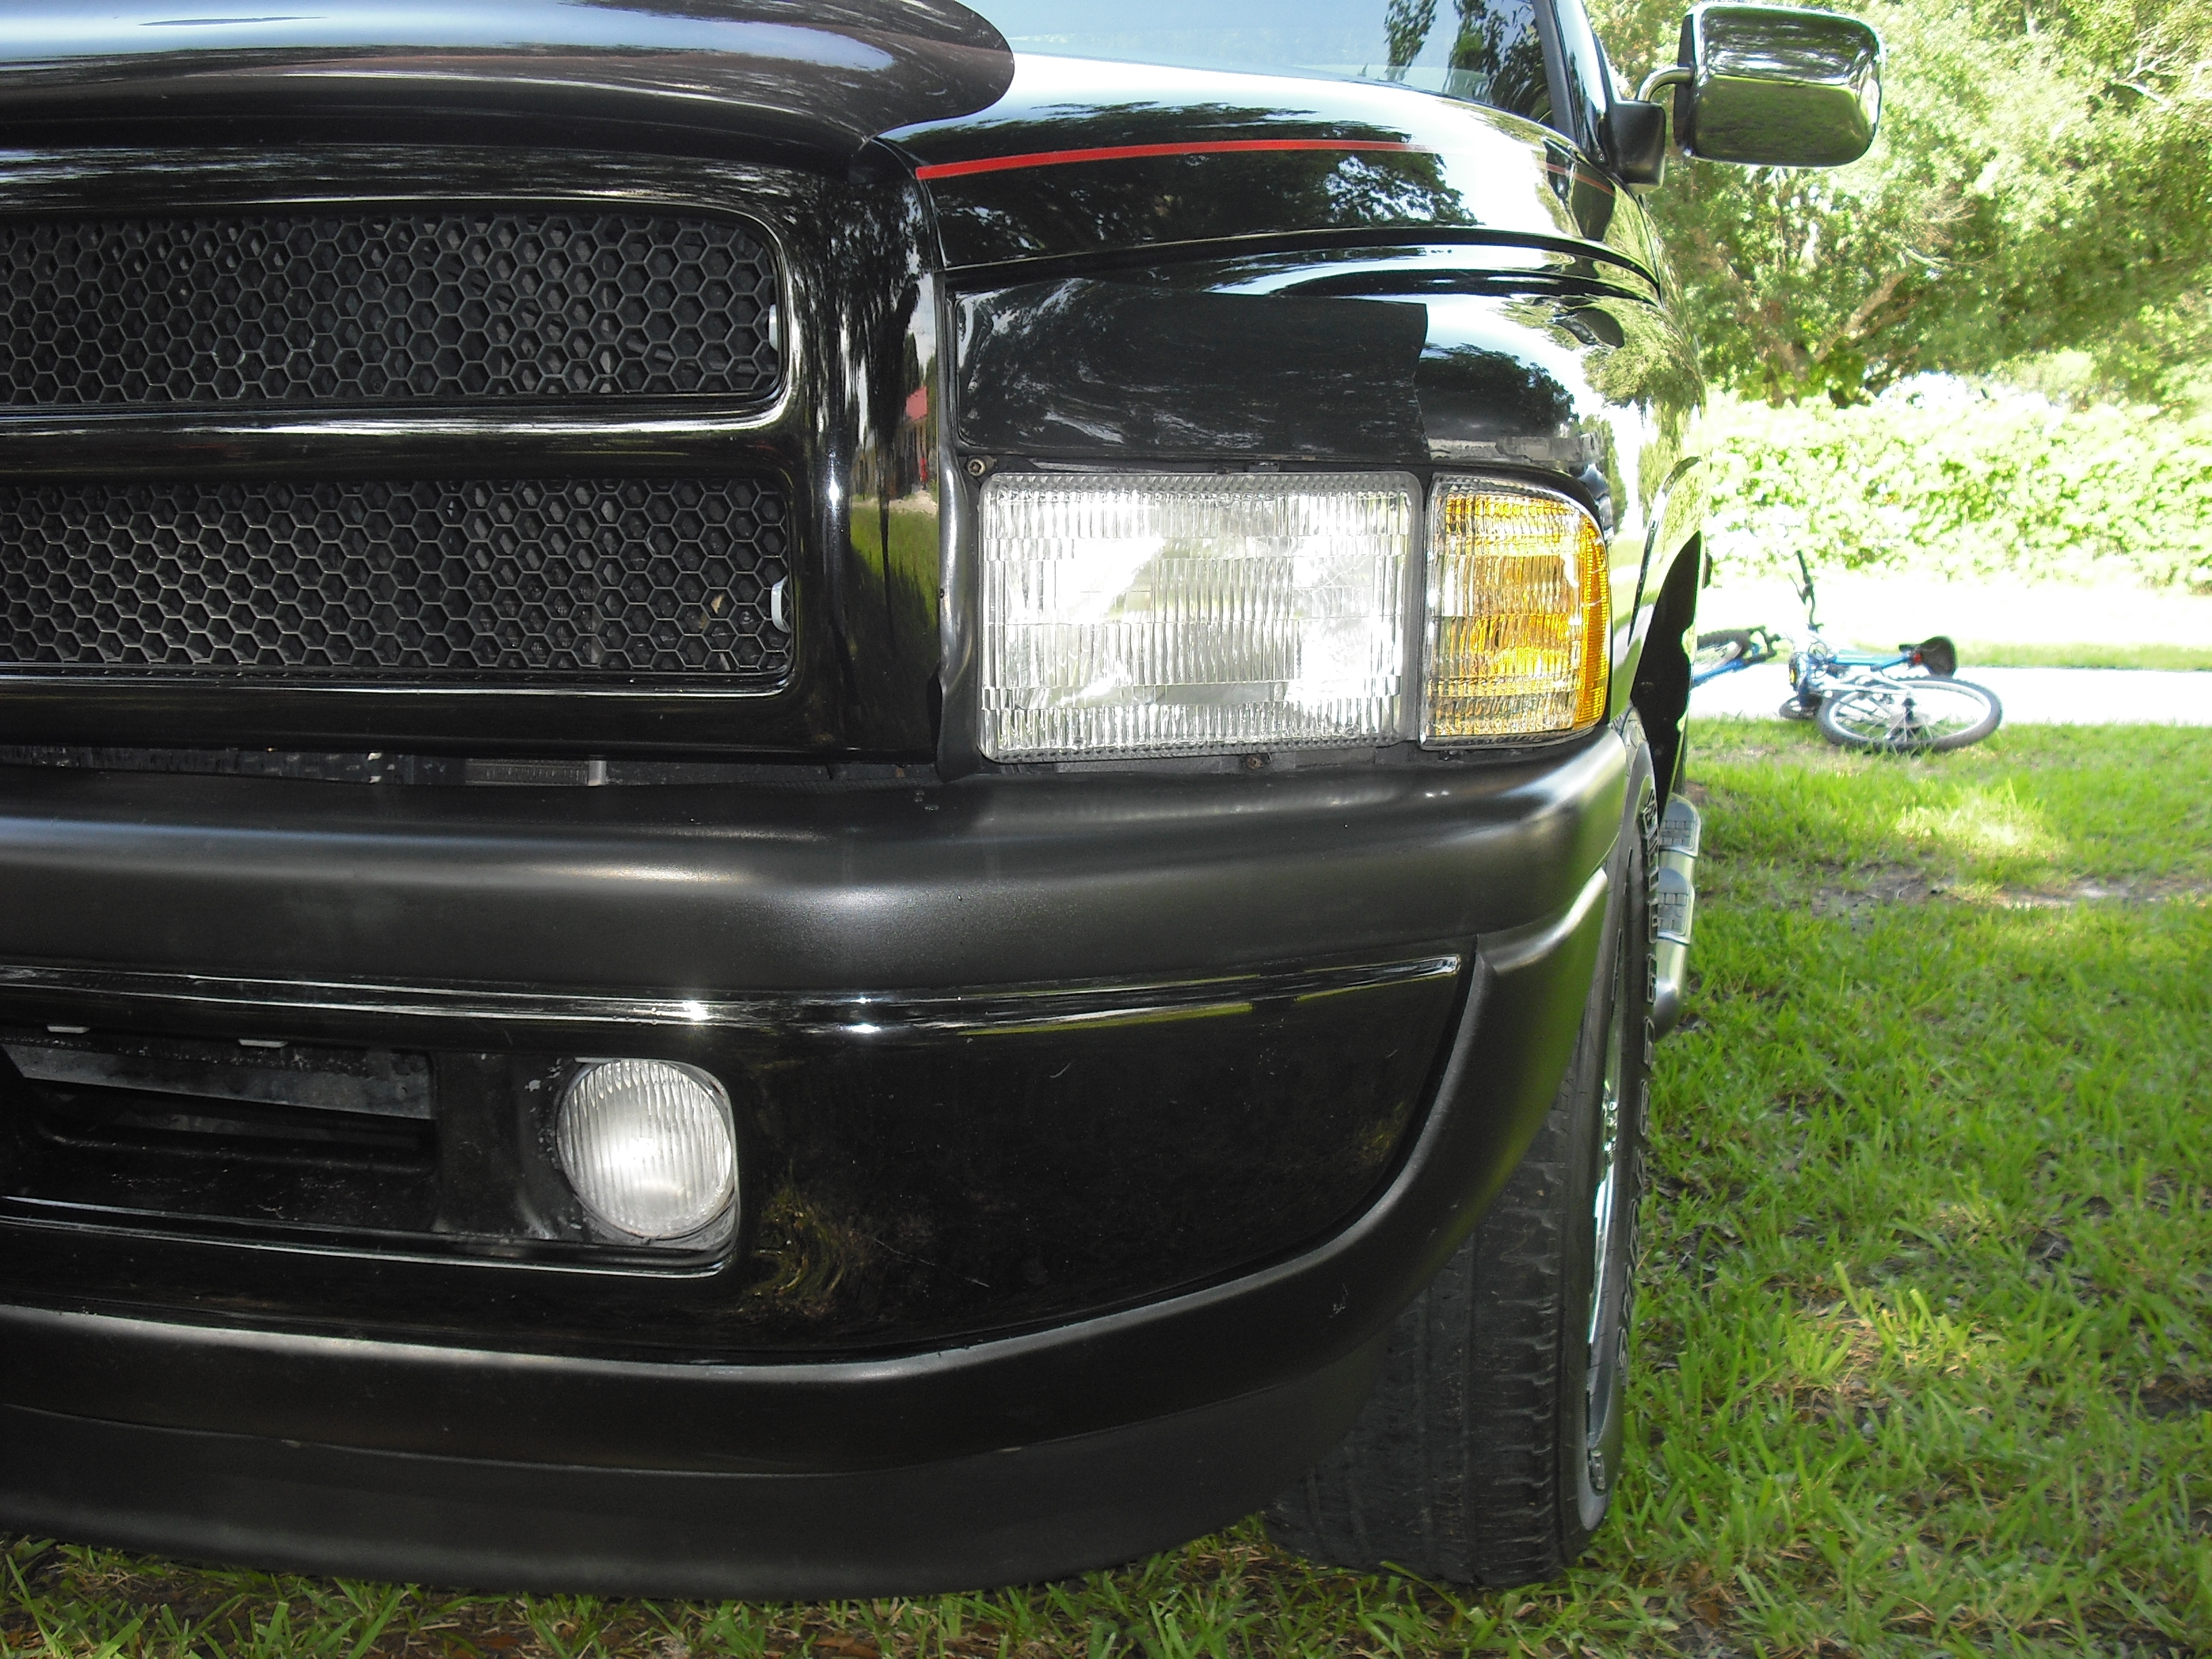 ridinnaRam 1996 Dodge Ram 1500 Regular Cab Specs, Photos